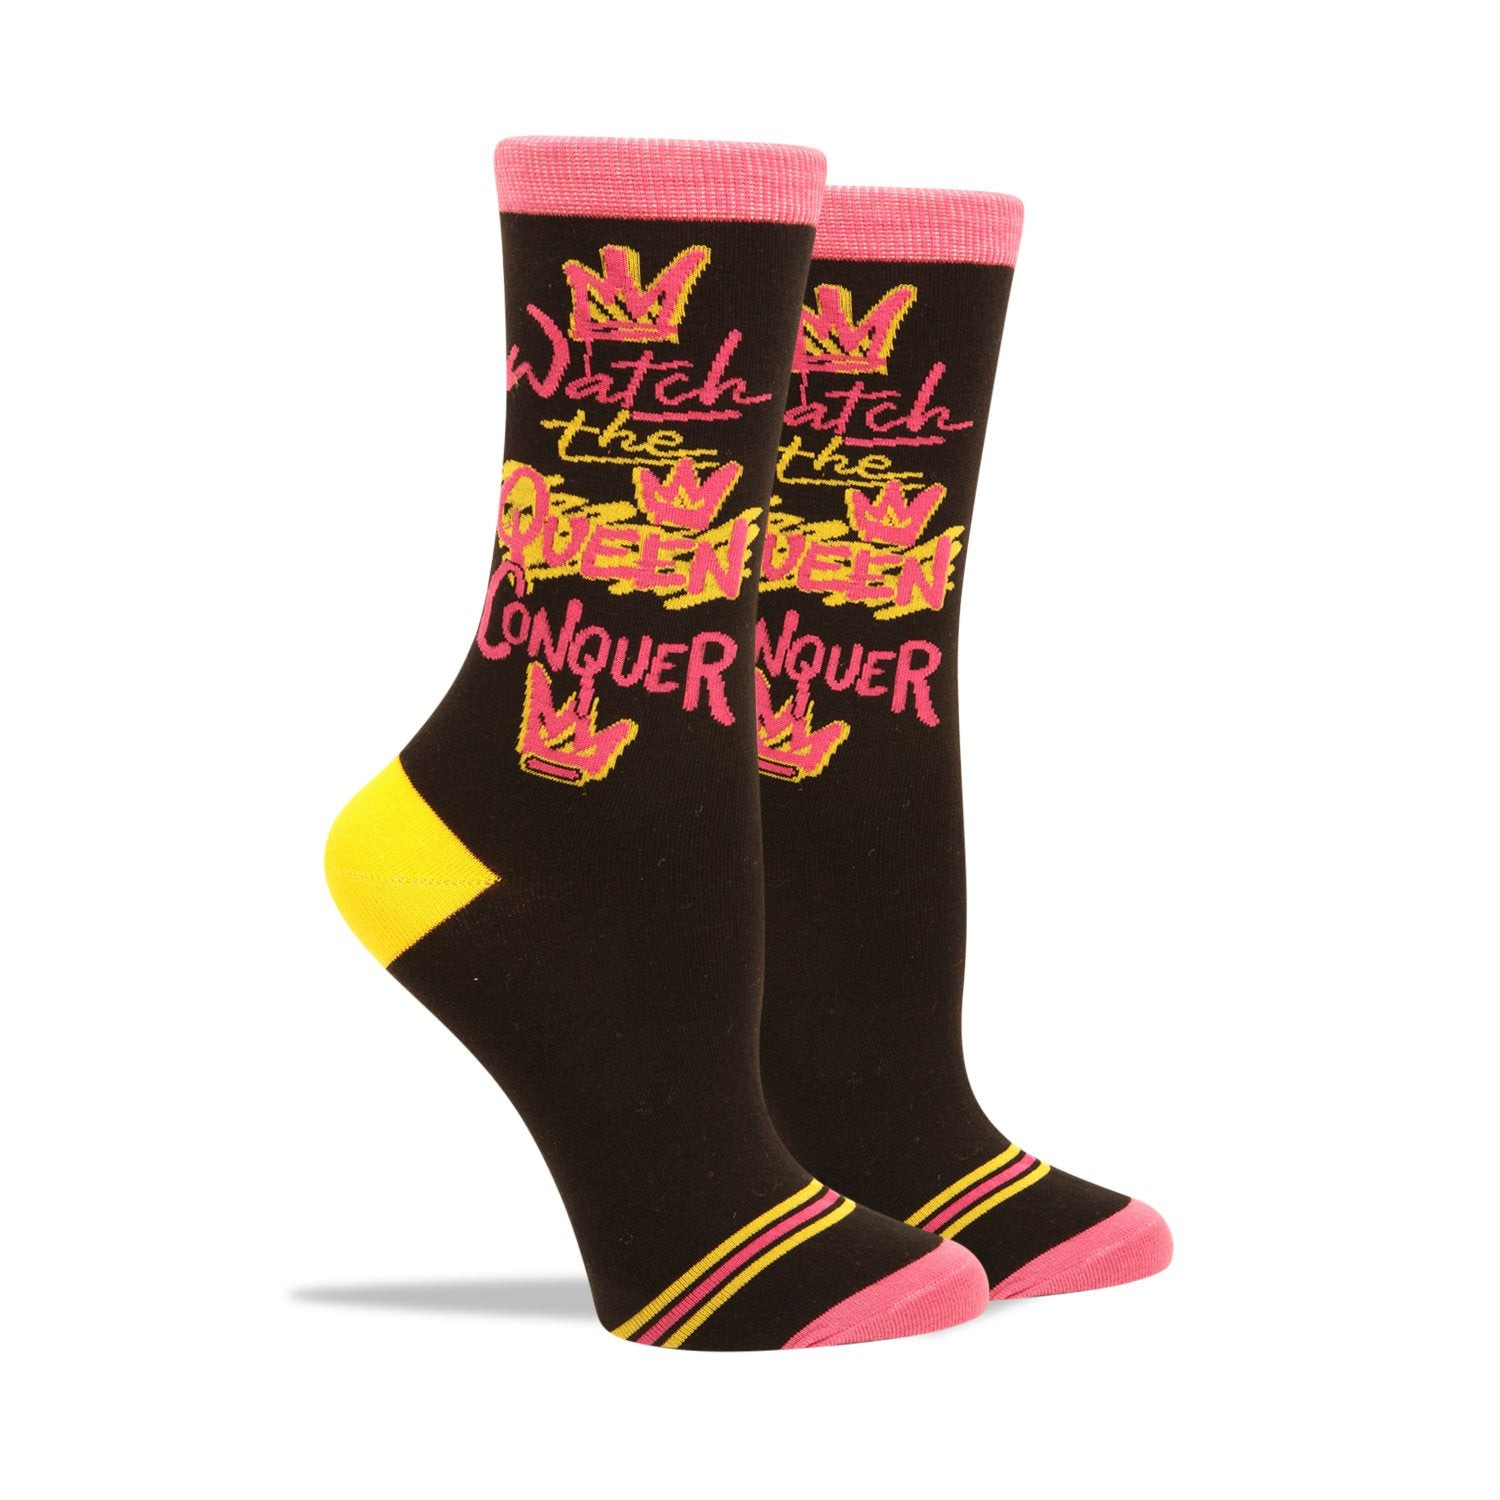 Conquer Women's Socks